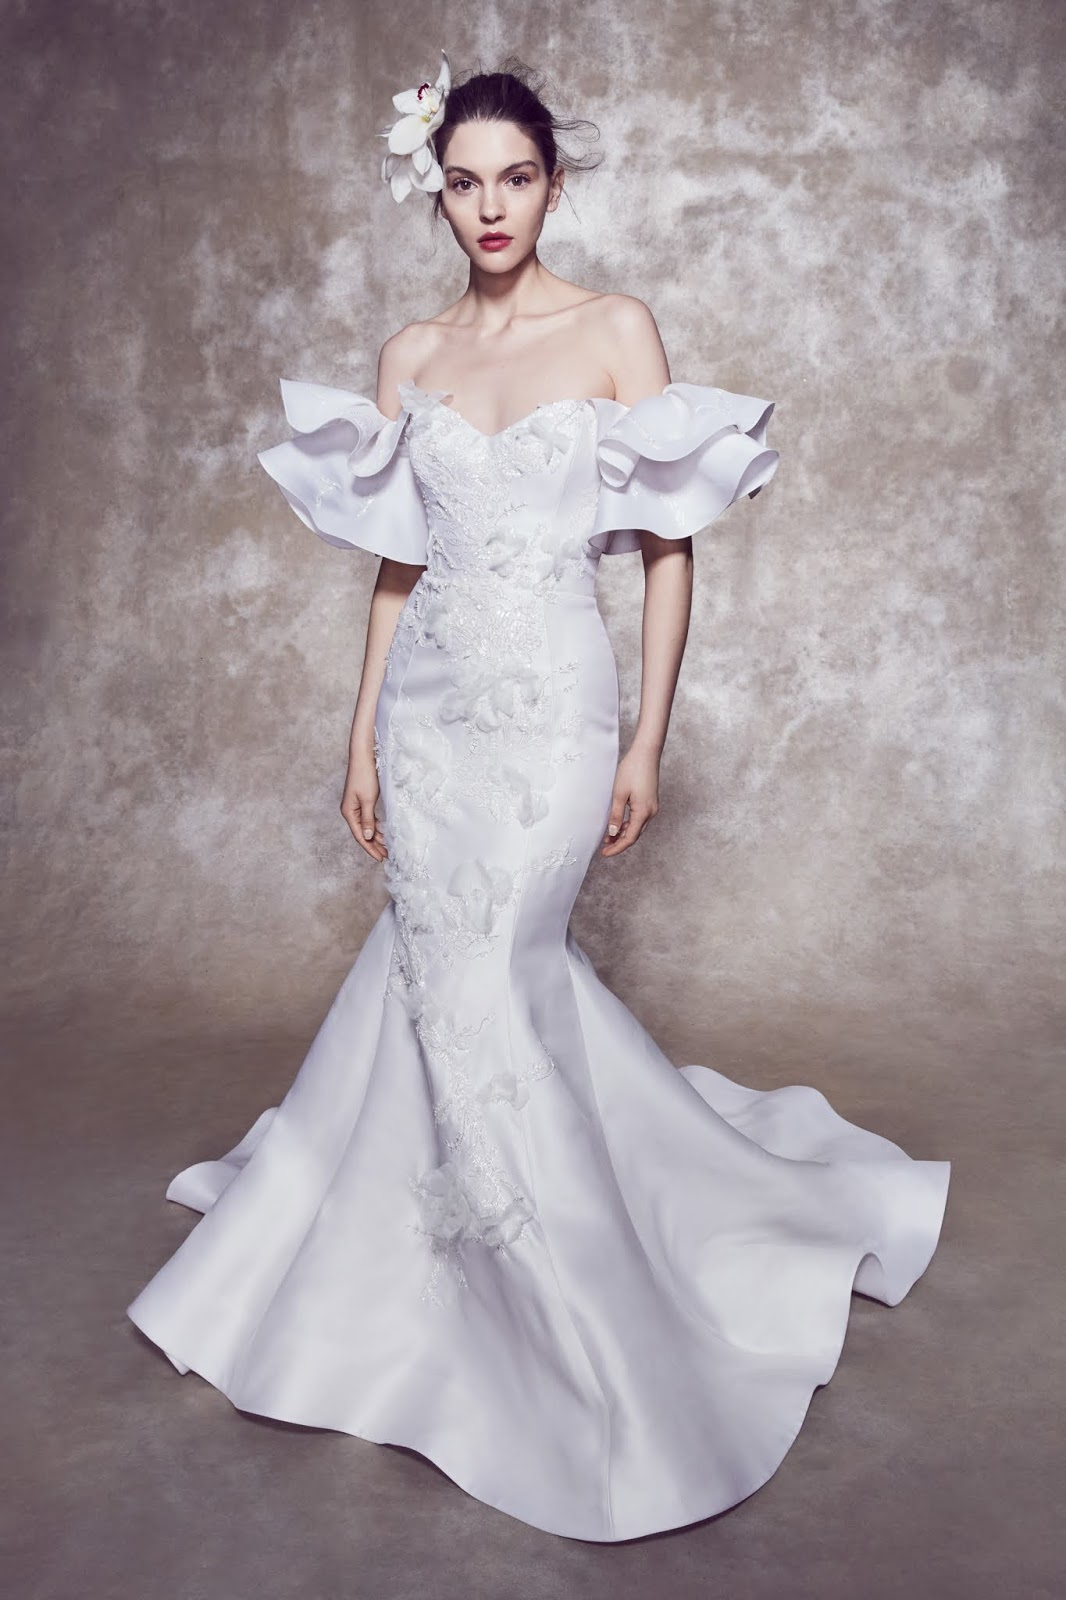 786987eadc45 Wedding Gown Inspiration | ZsaZsa Bellagio – Like No Other